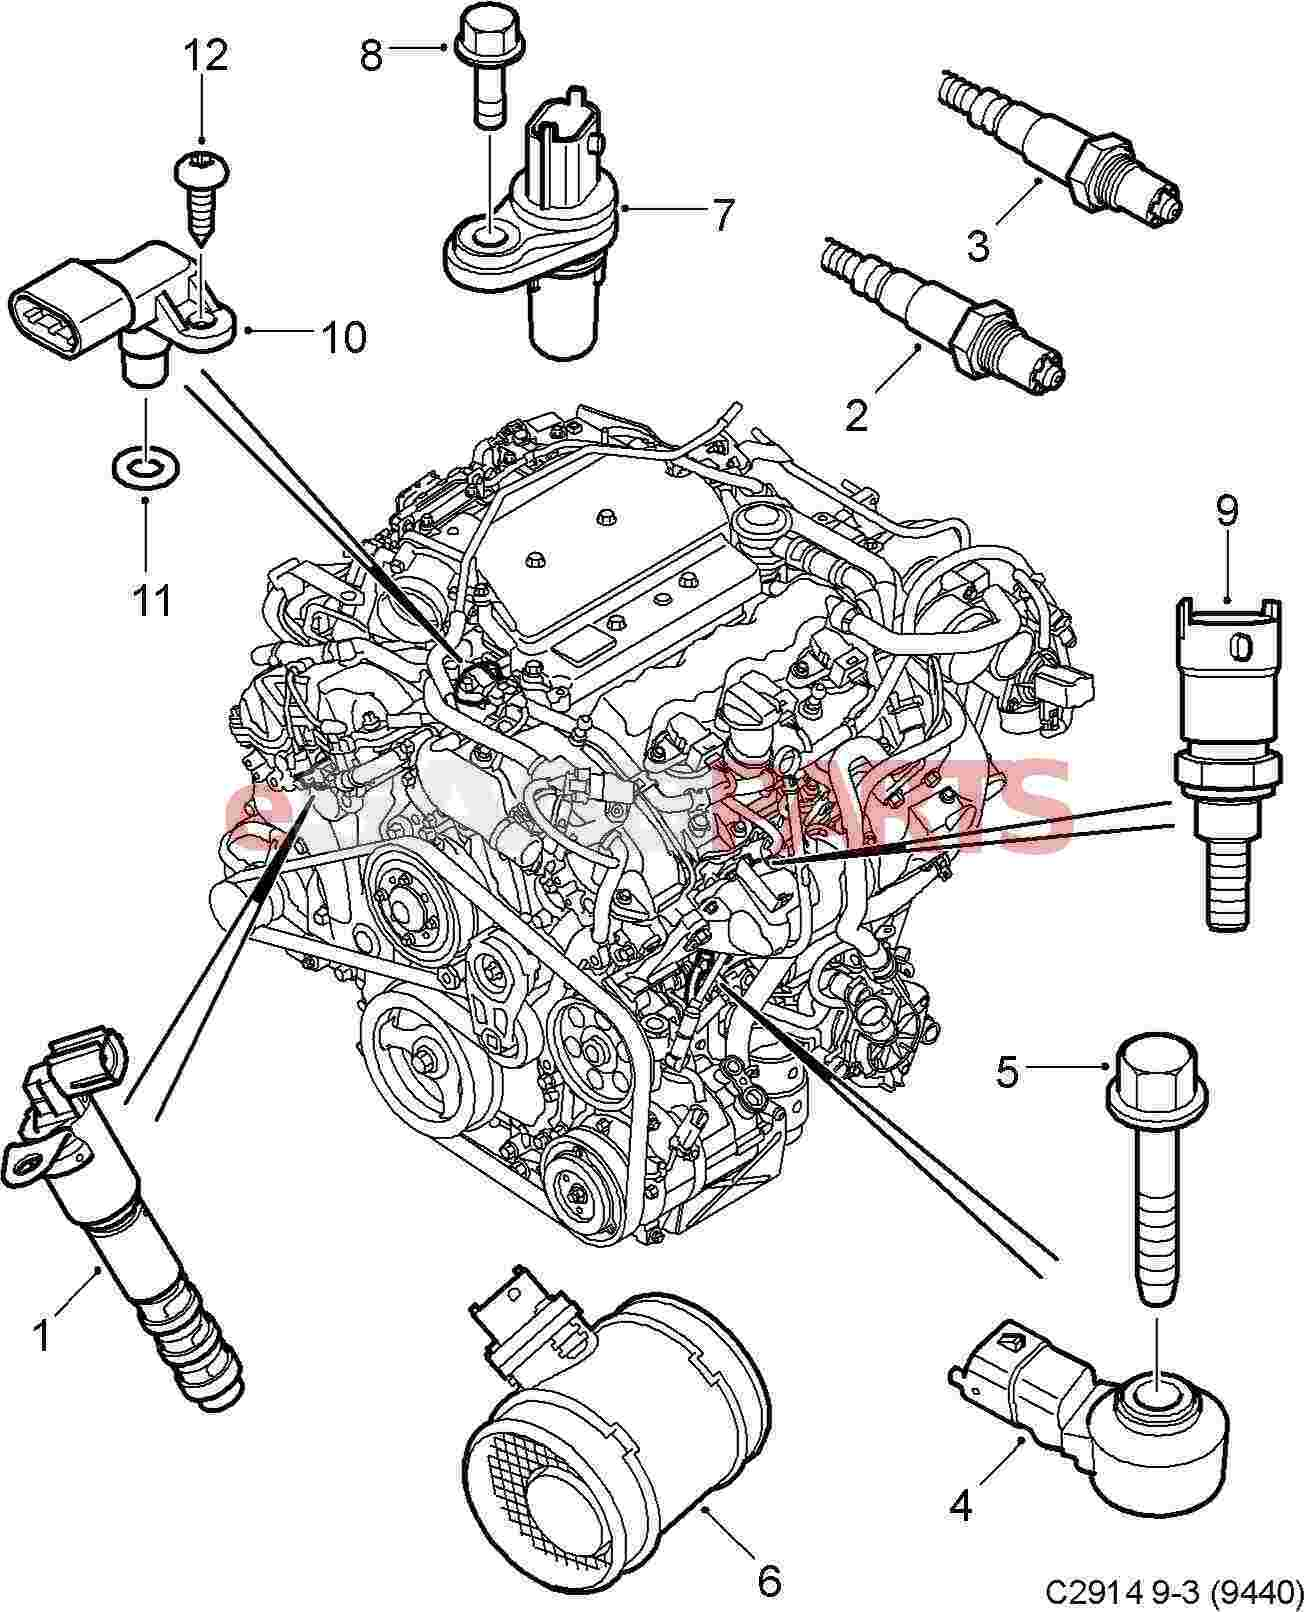 1999 Saab 9 5 Engine Diagram